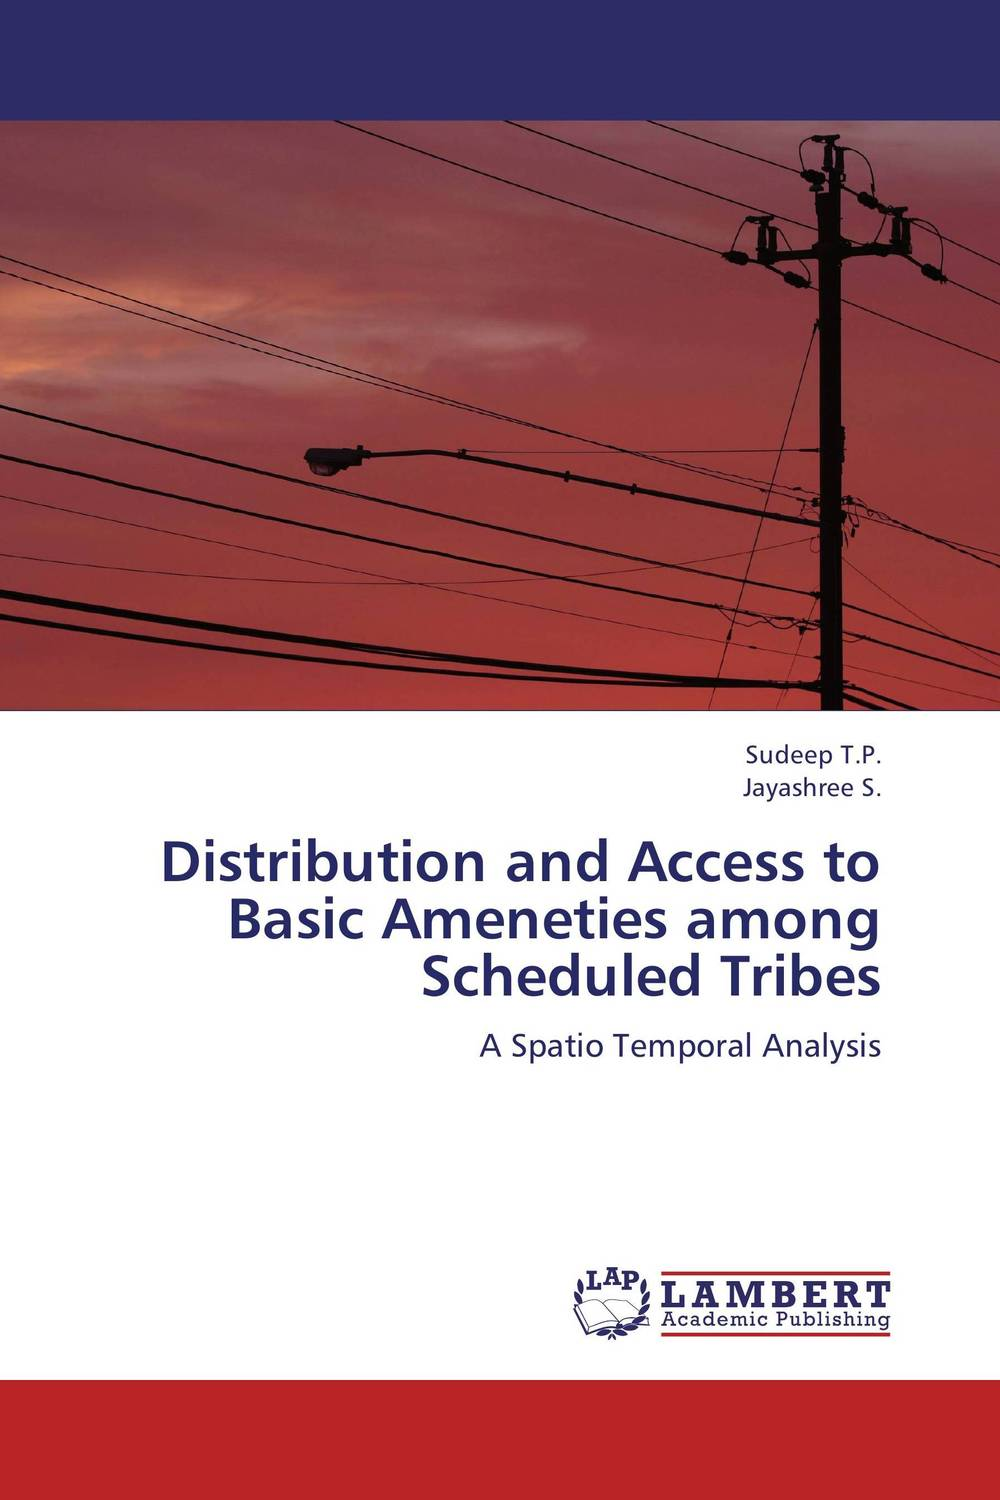 Distribution and Access to Basic Ameneties among Scheduled Tribes bir pal singh social inequality and exclusion of scheduled tribes in india